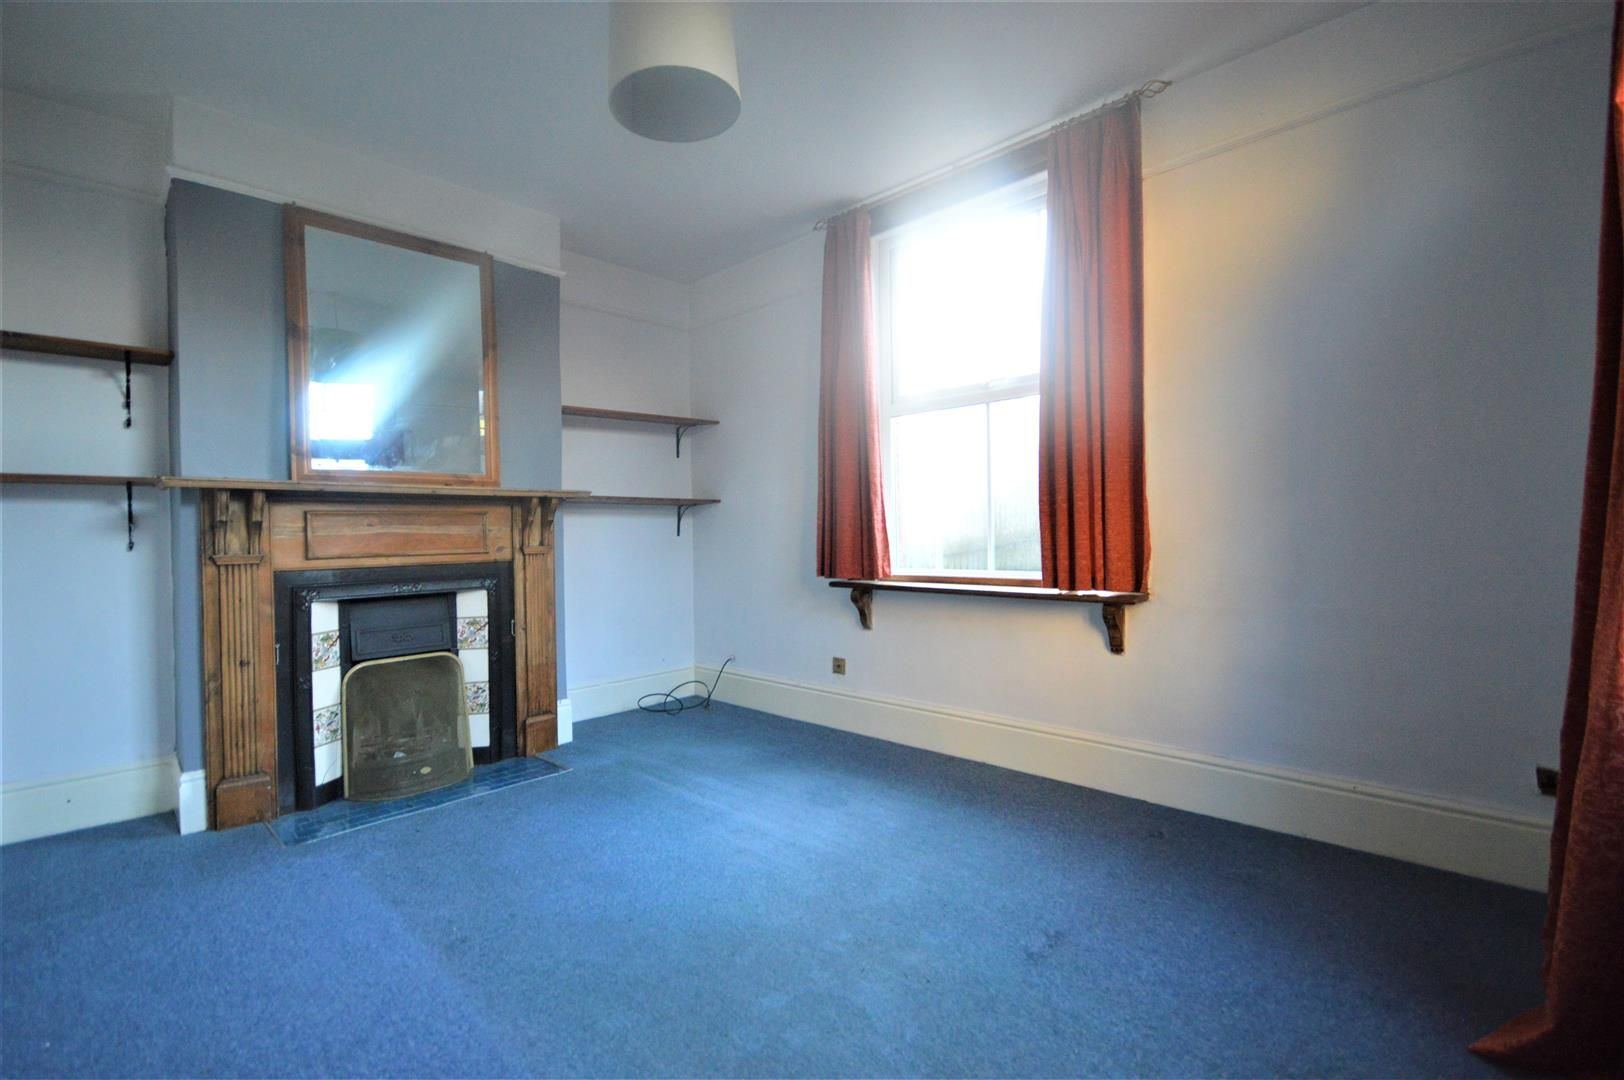 3 bed end-of-terrace for sale in Leominster 2